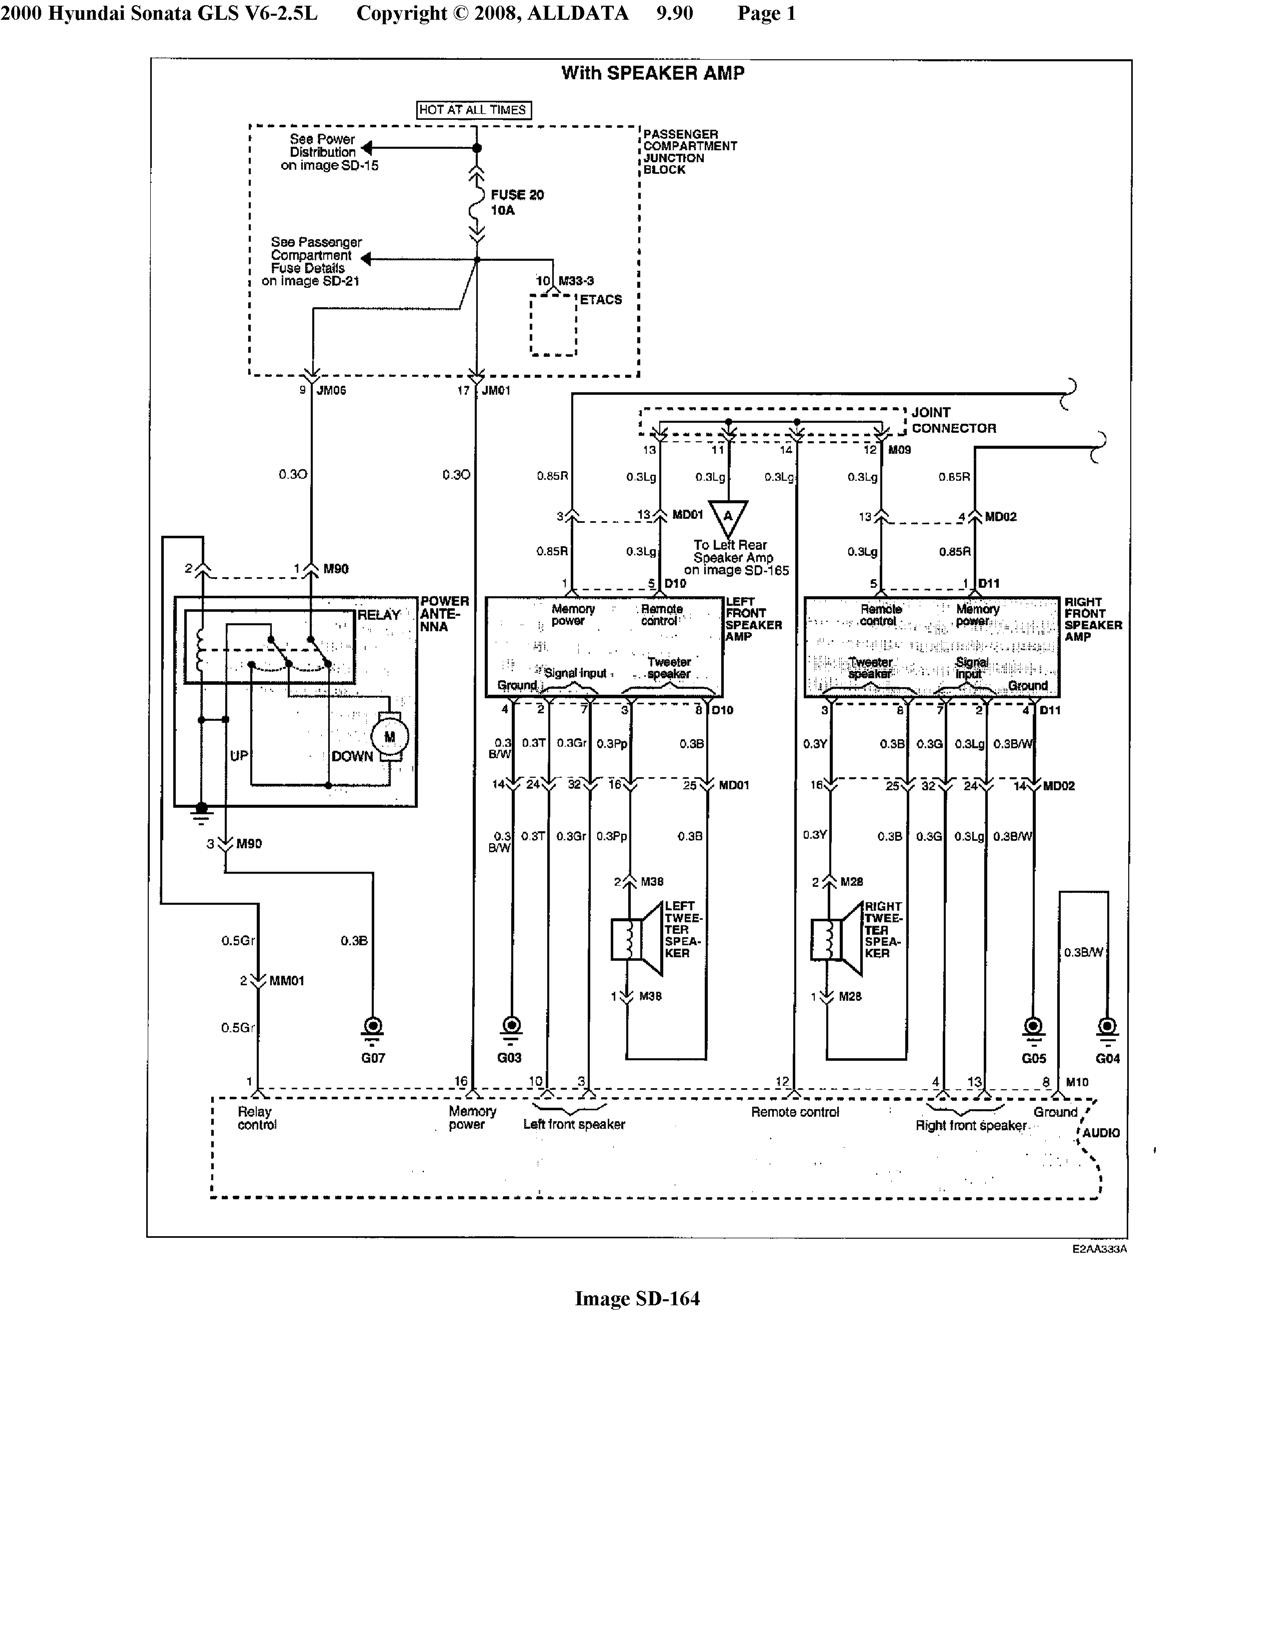 2001 Nissan Xterra Radio Wiring Diagram from i2.wp.com